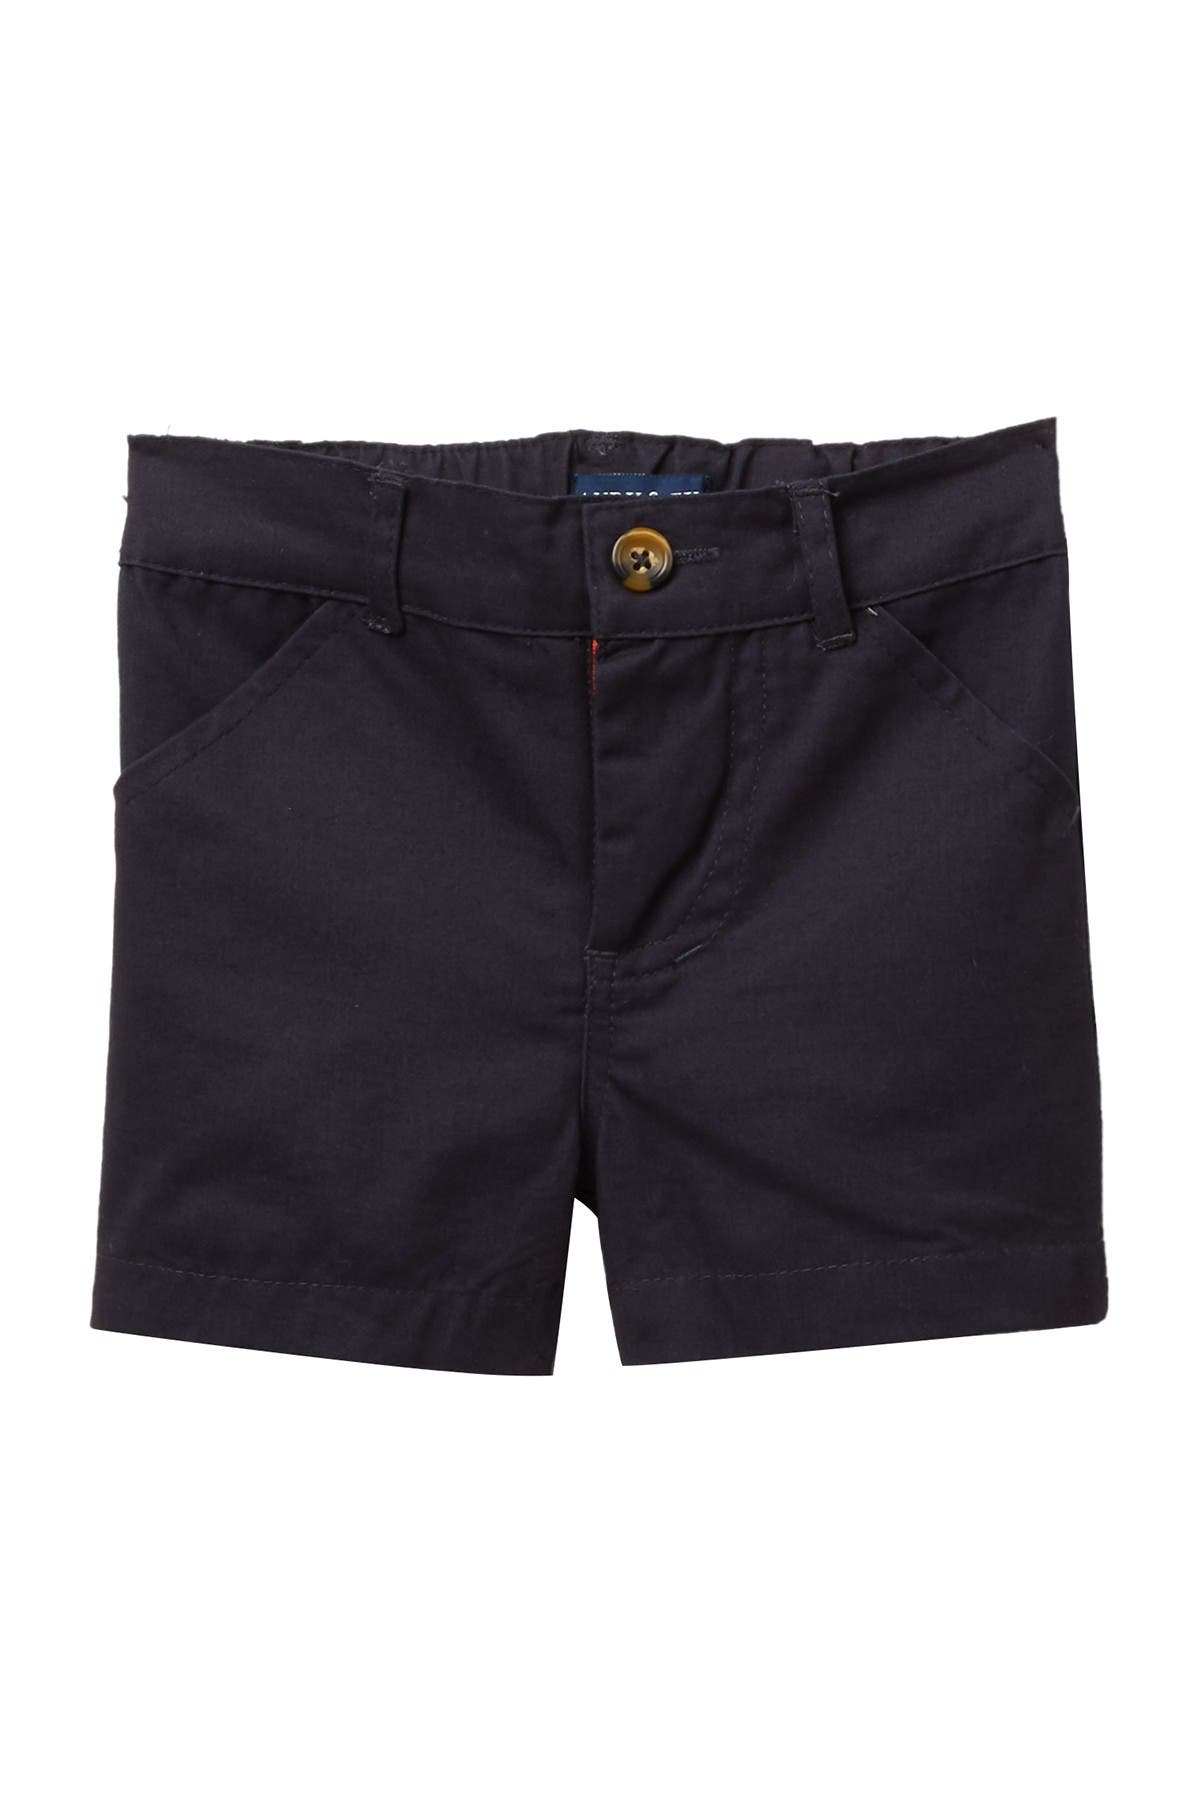 Image of Andy & Evan Navy Twill Shorts